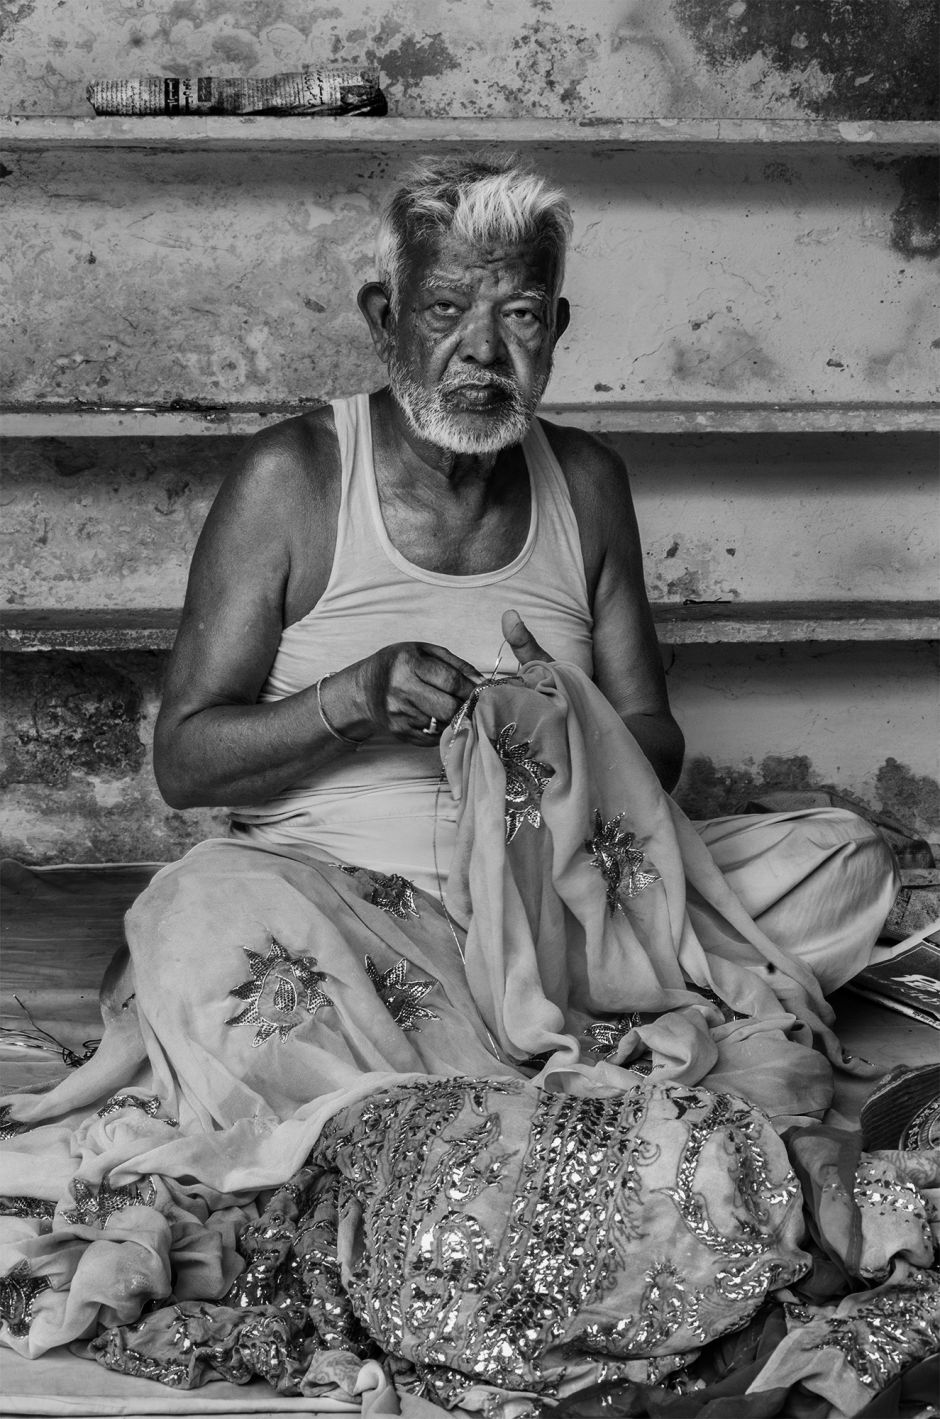 Taqi, an 80-year-old Badla artisan, working in extremely harsh conditions in the Sa-datganj Workshop, Old Lucknow. Photo credit: Taha Ahmad